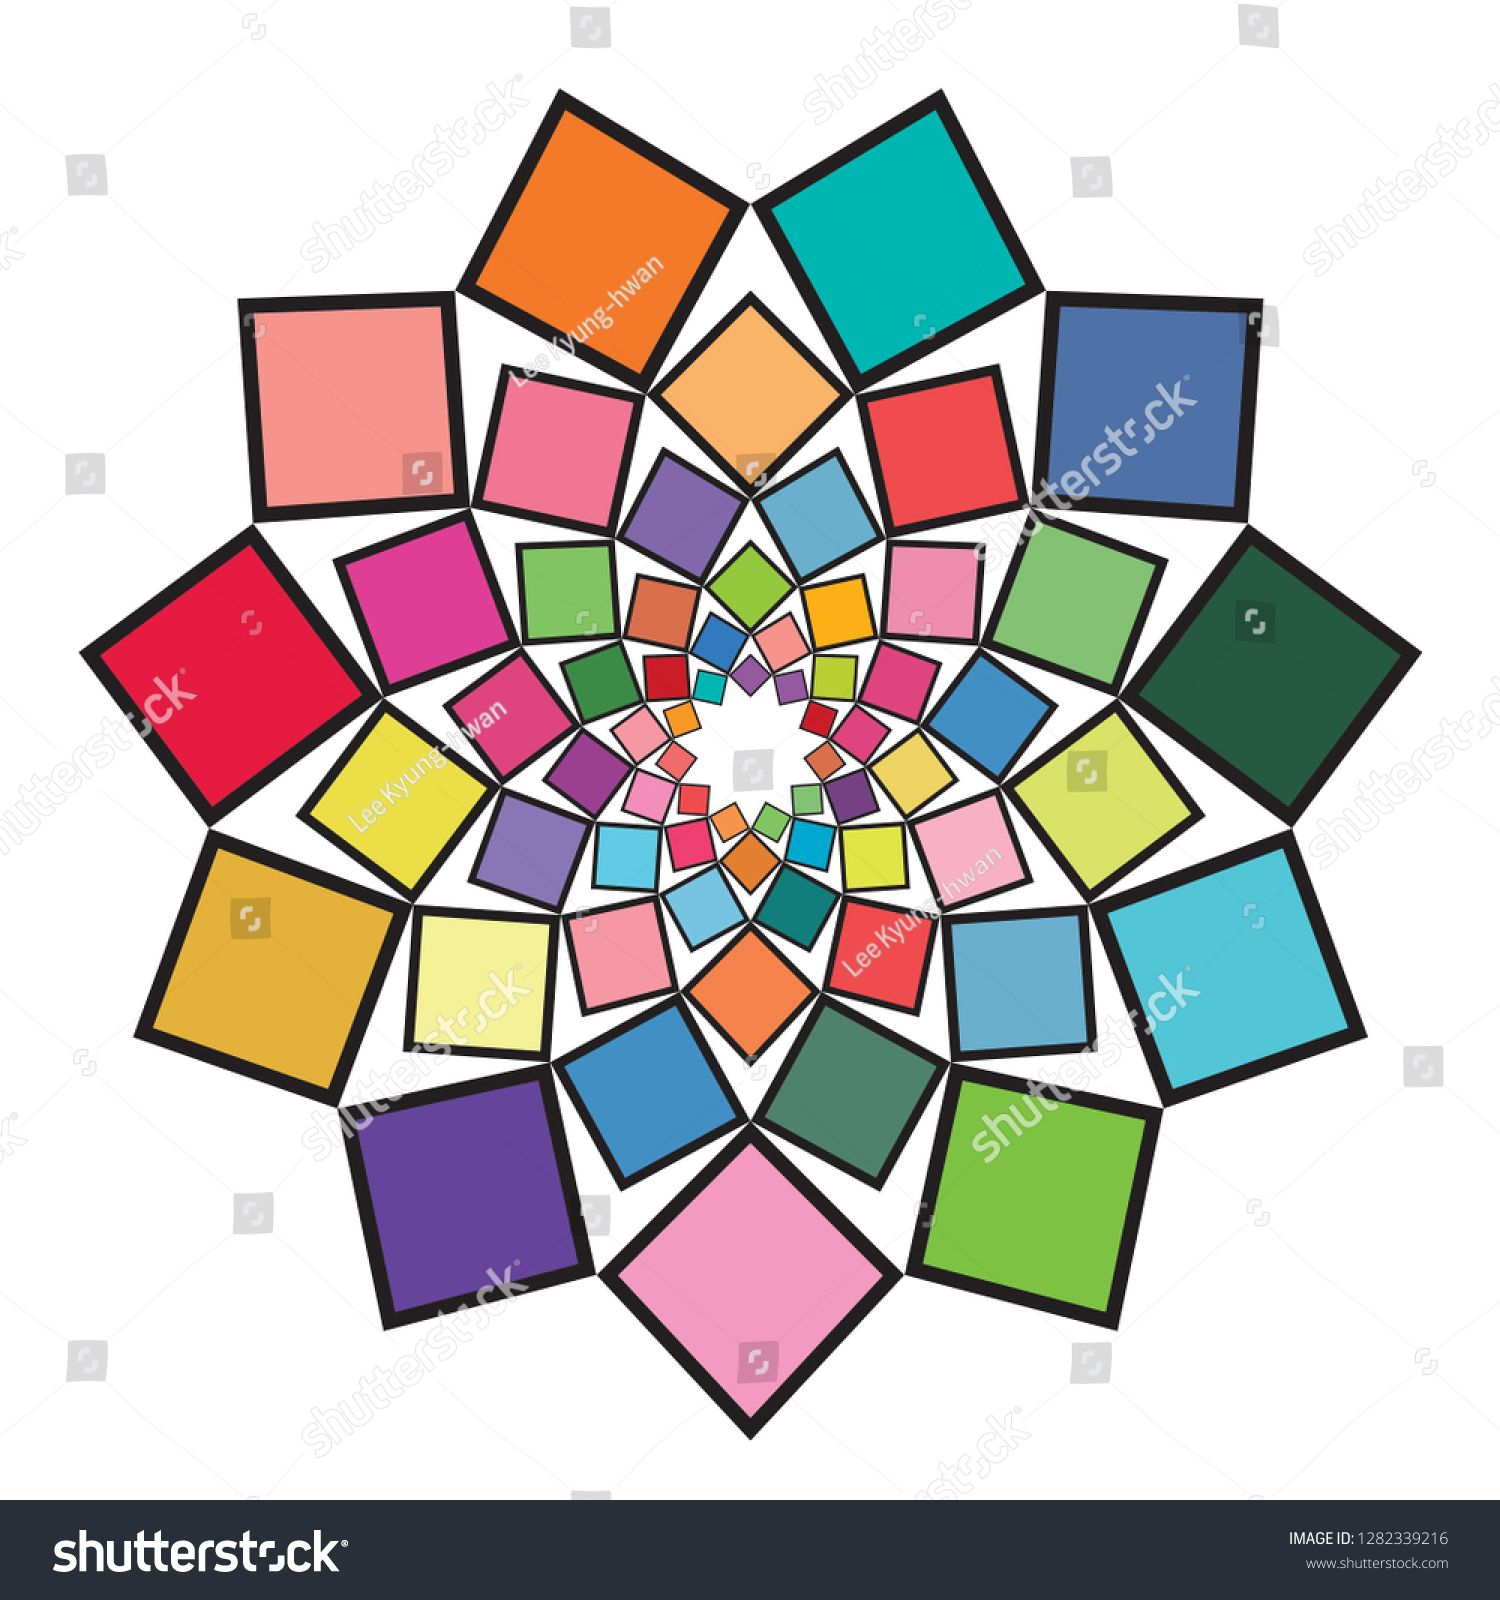 flower shaped ornamental work made using various colored squares fashion design and house interior vector illustration ad also rh pinterest